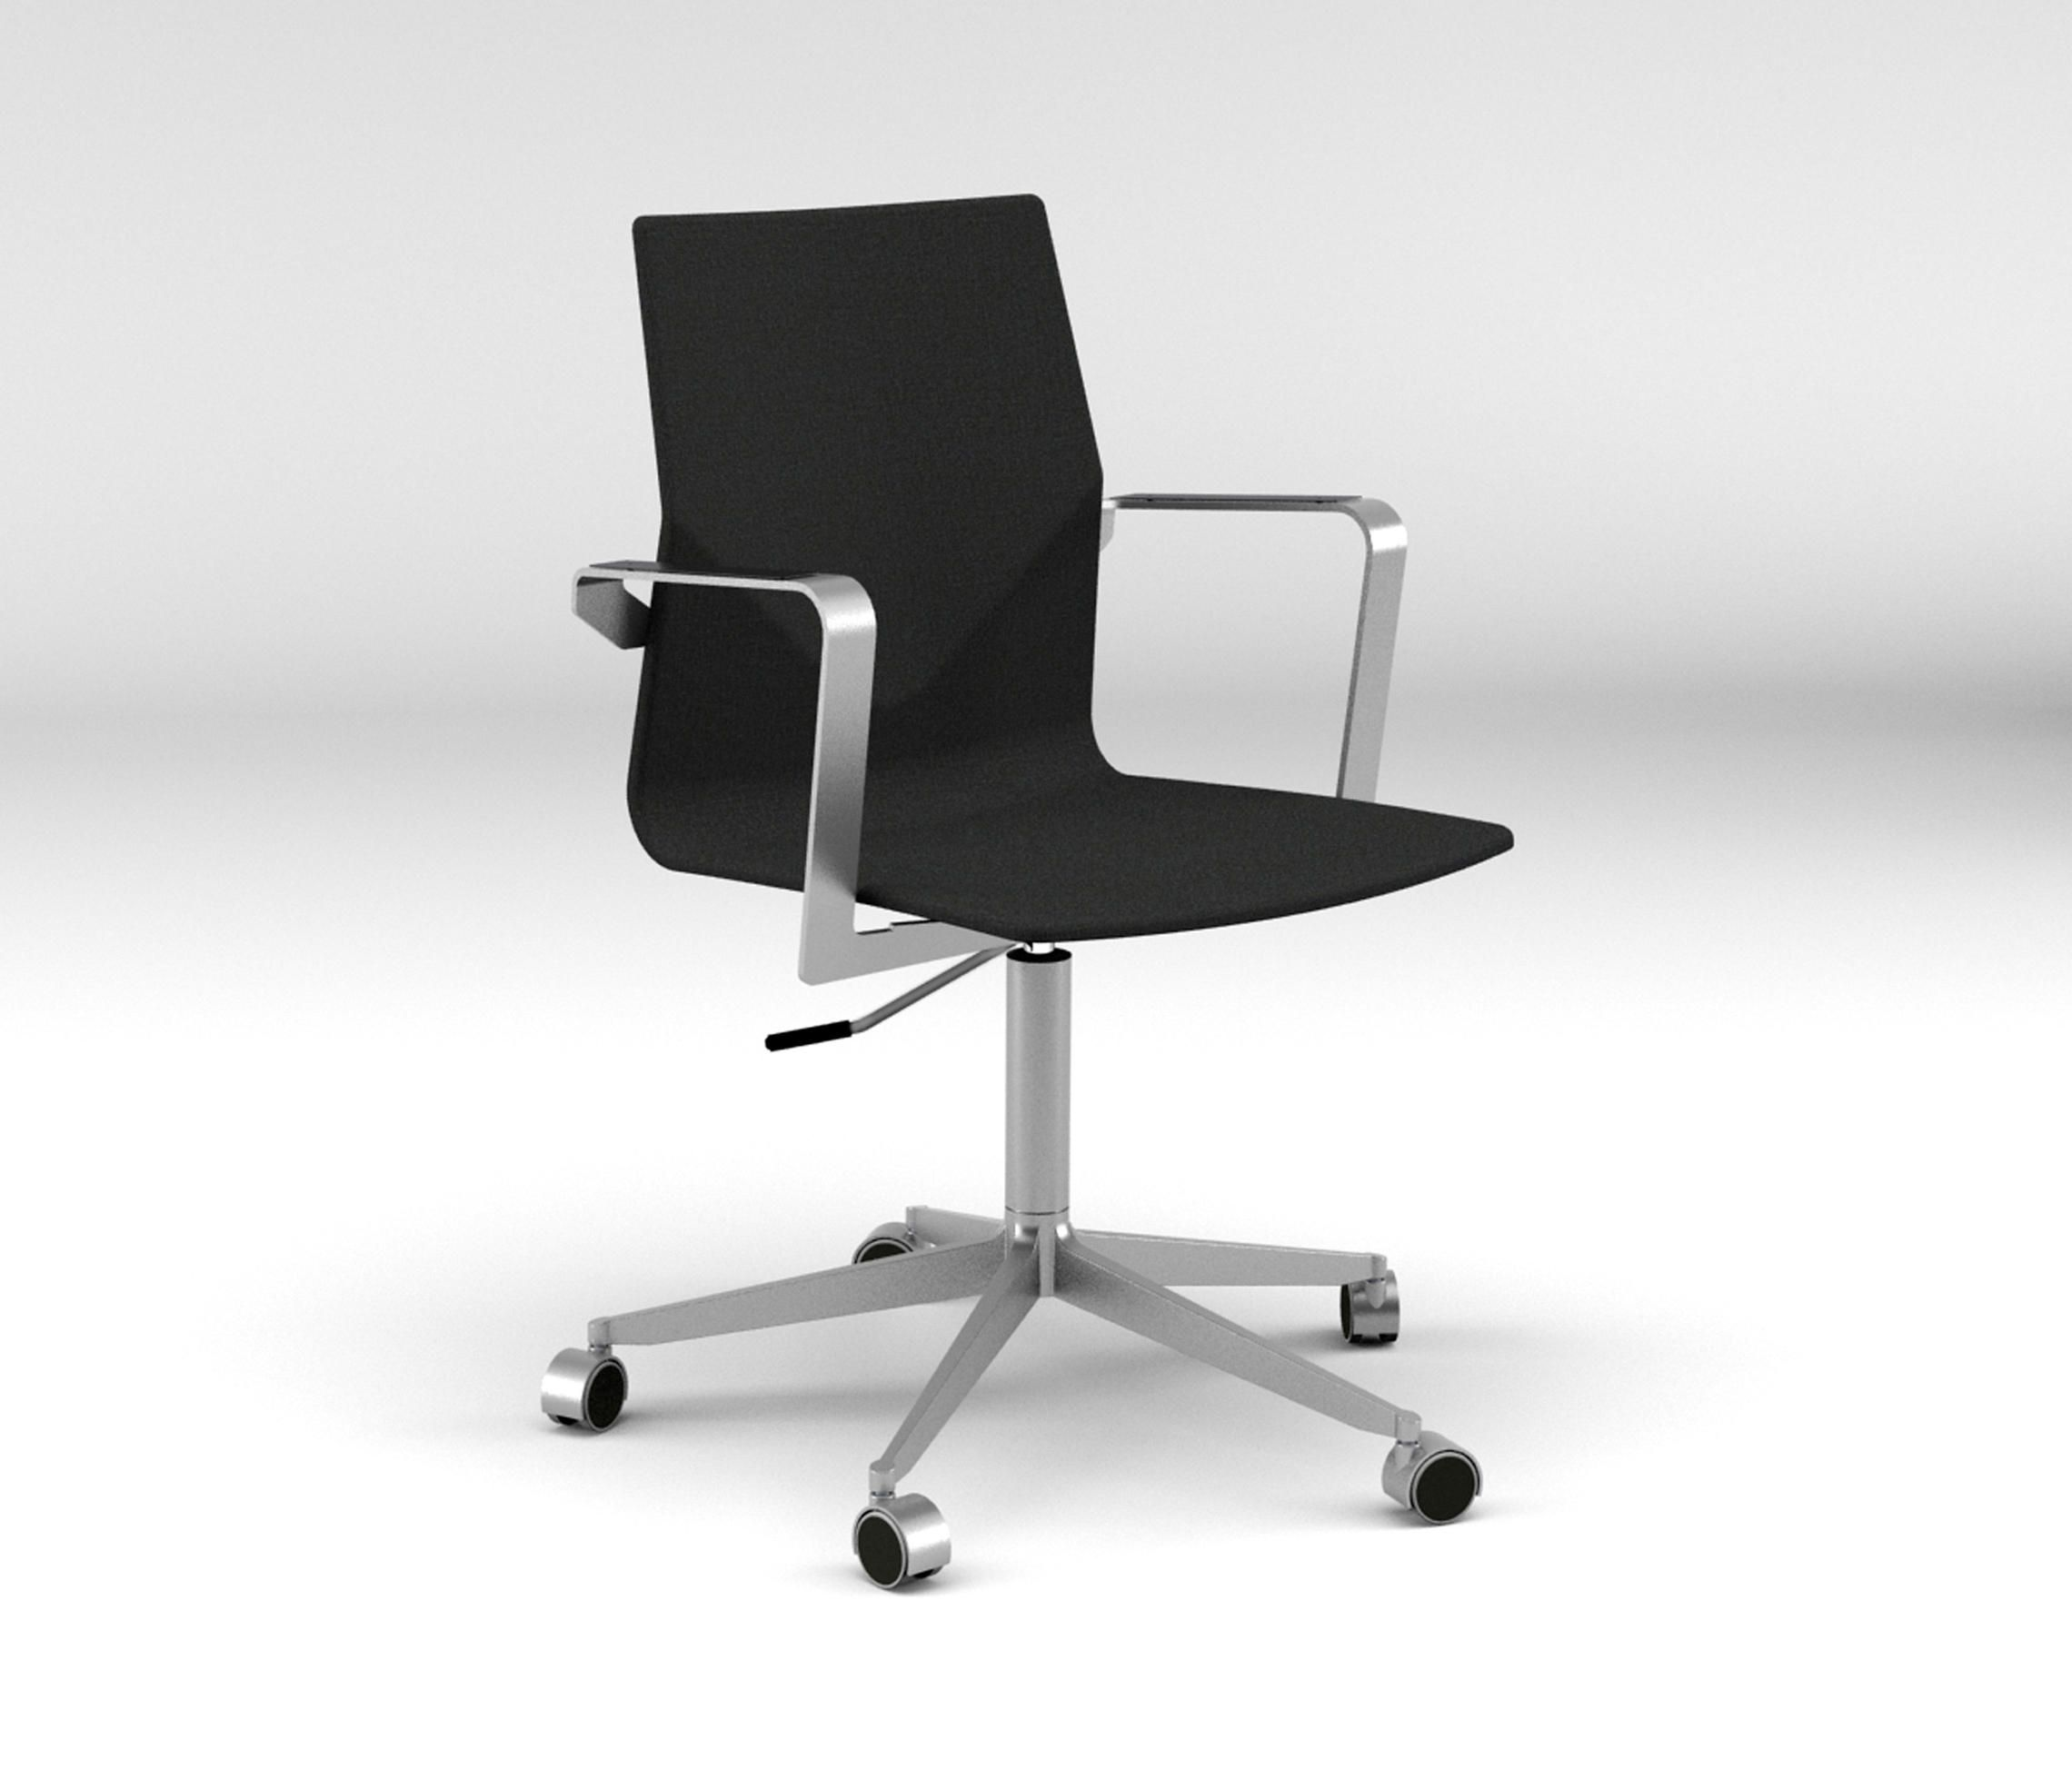 Four Cast2 Xl Xl Plus Task Chairs From Four Design Architonic